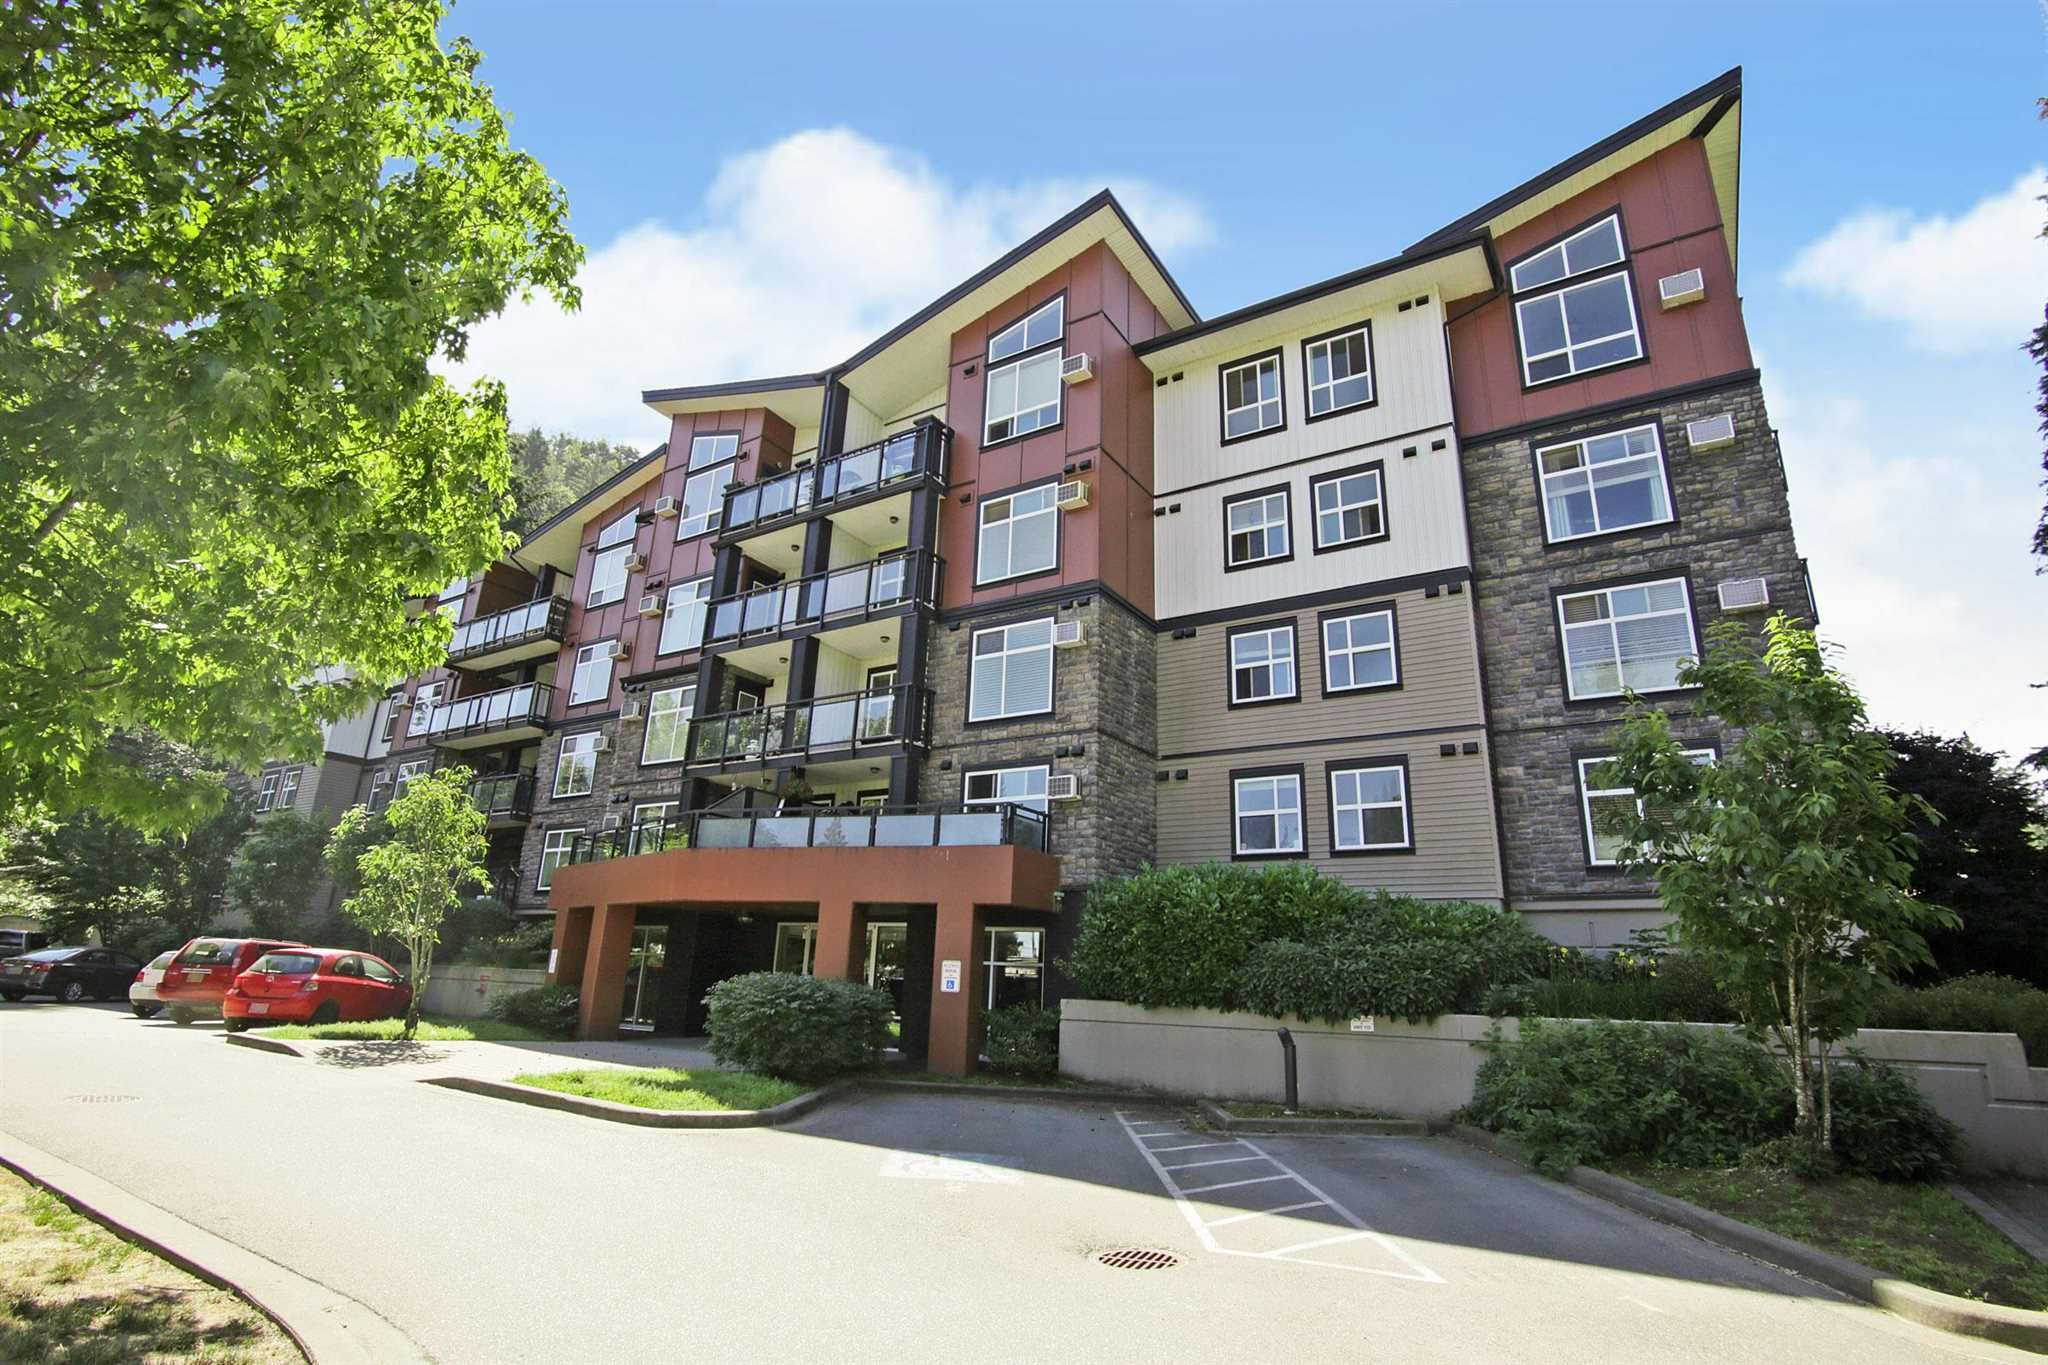 """Main Photo: 407 45640 ALMA Avenue in Chilliwack: Vedder S Watson-Promontory Condo for sale in """"AMEERA PLACE"""" (Sardis)  : MLS®# R2596109"""